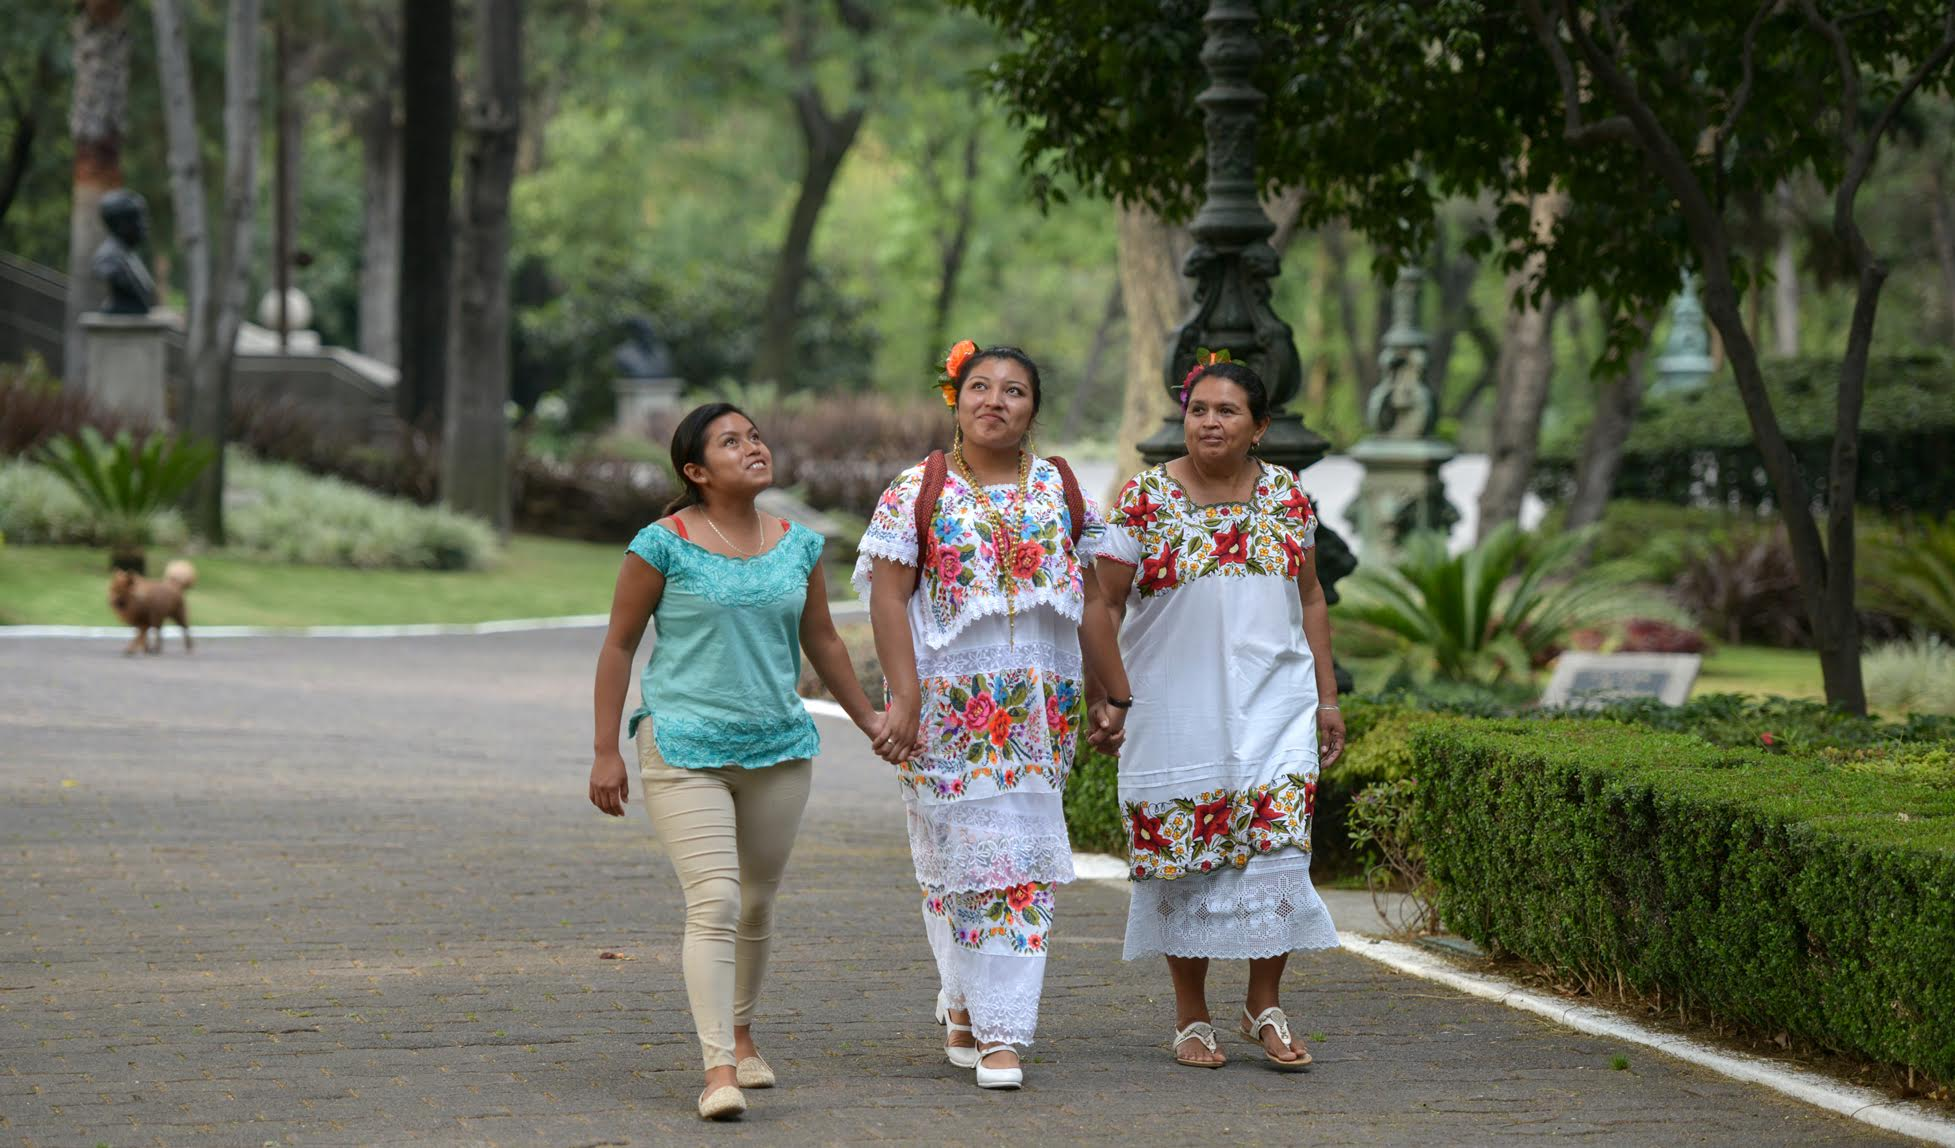 Fatima, Laigxa and Director Leticia on their tour of the gardens of the official residence of Los Pinos.